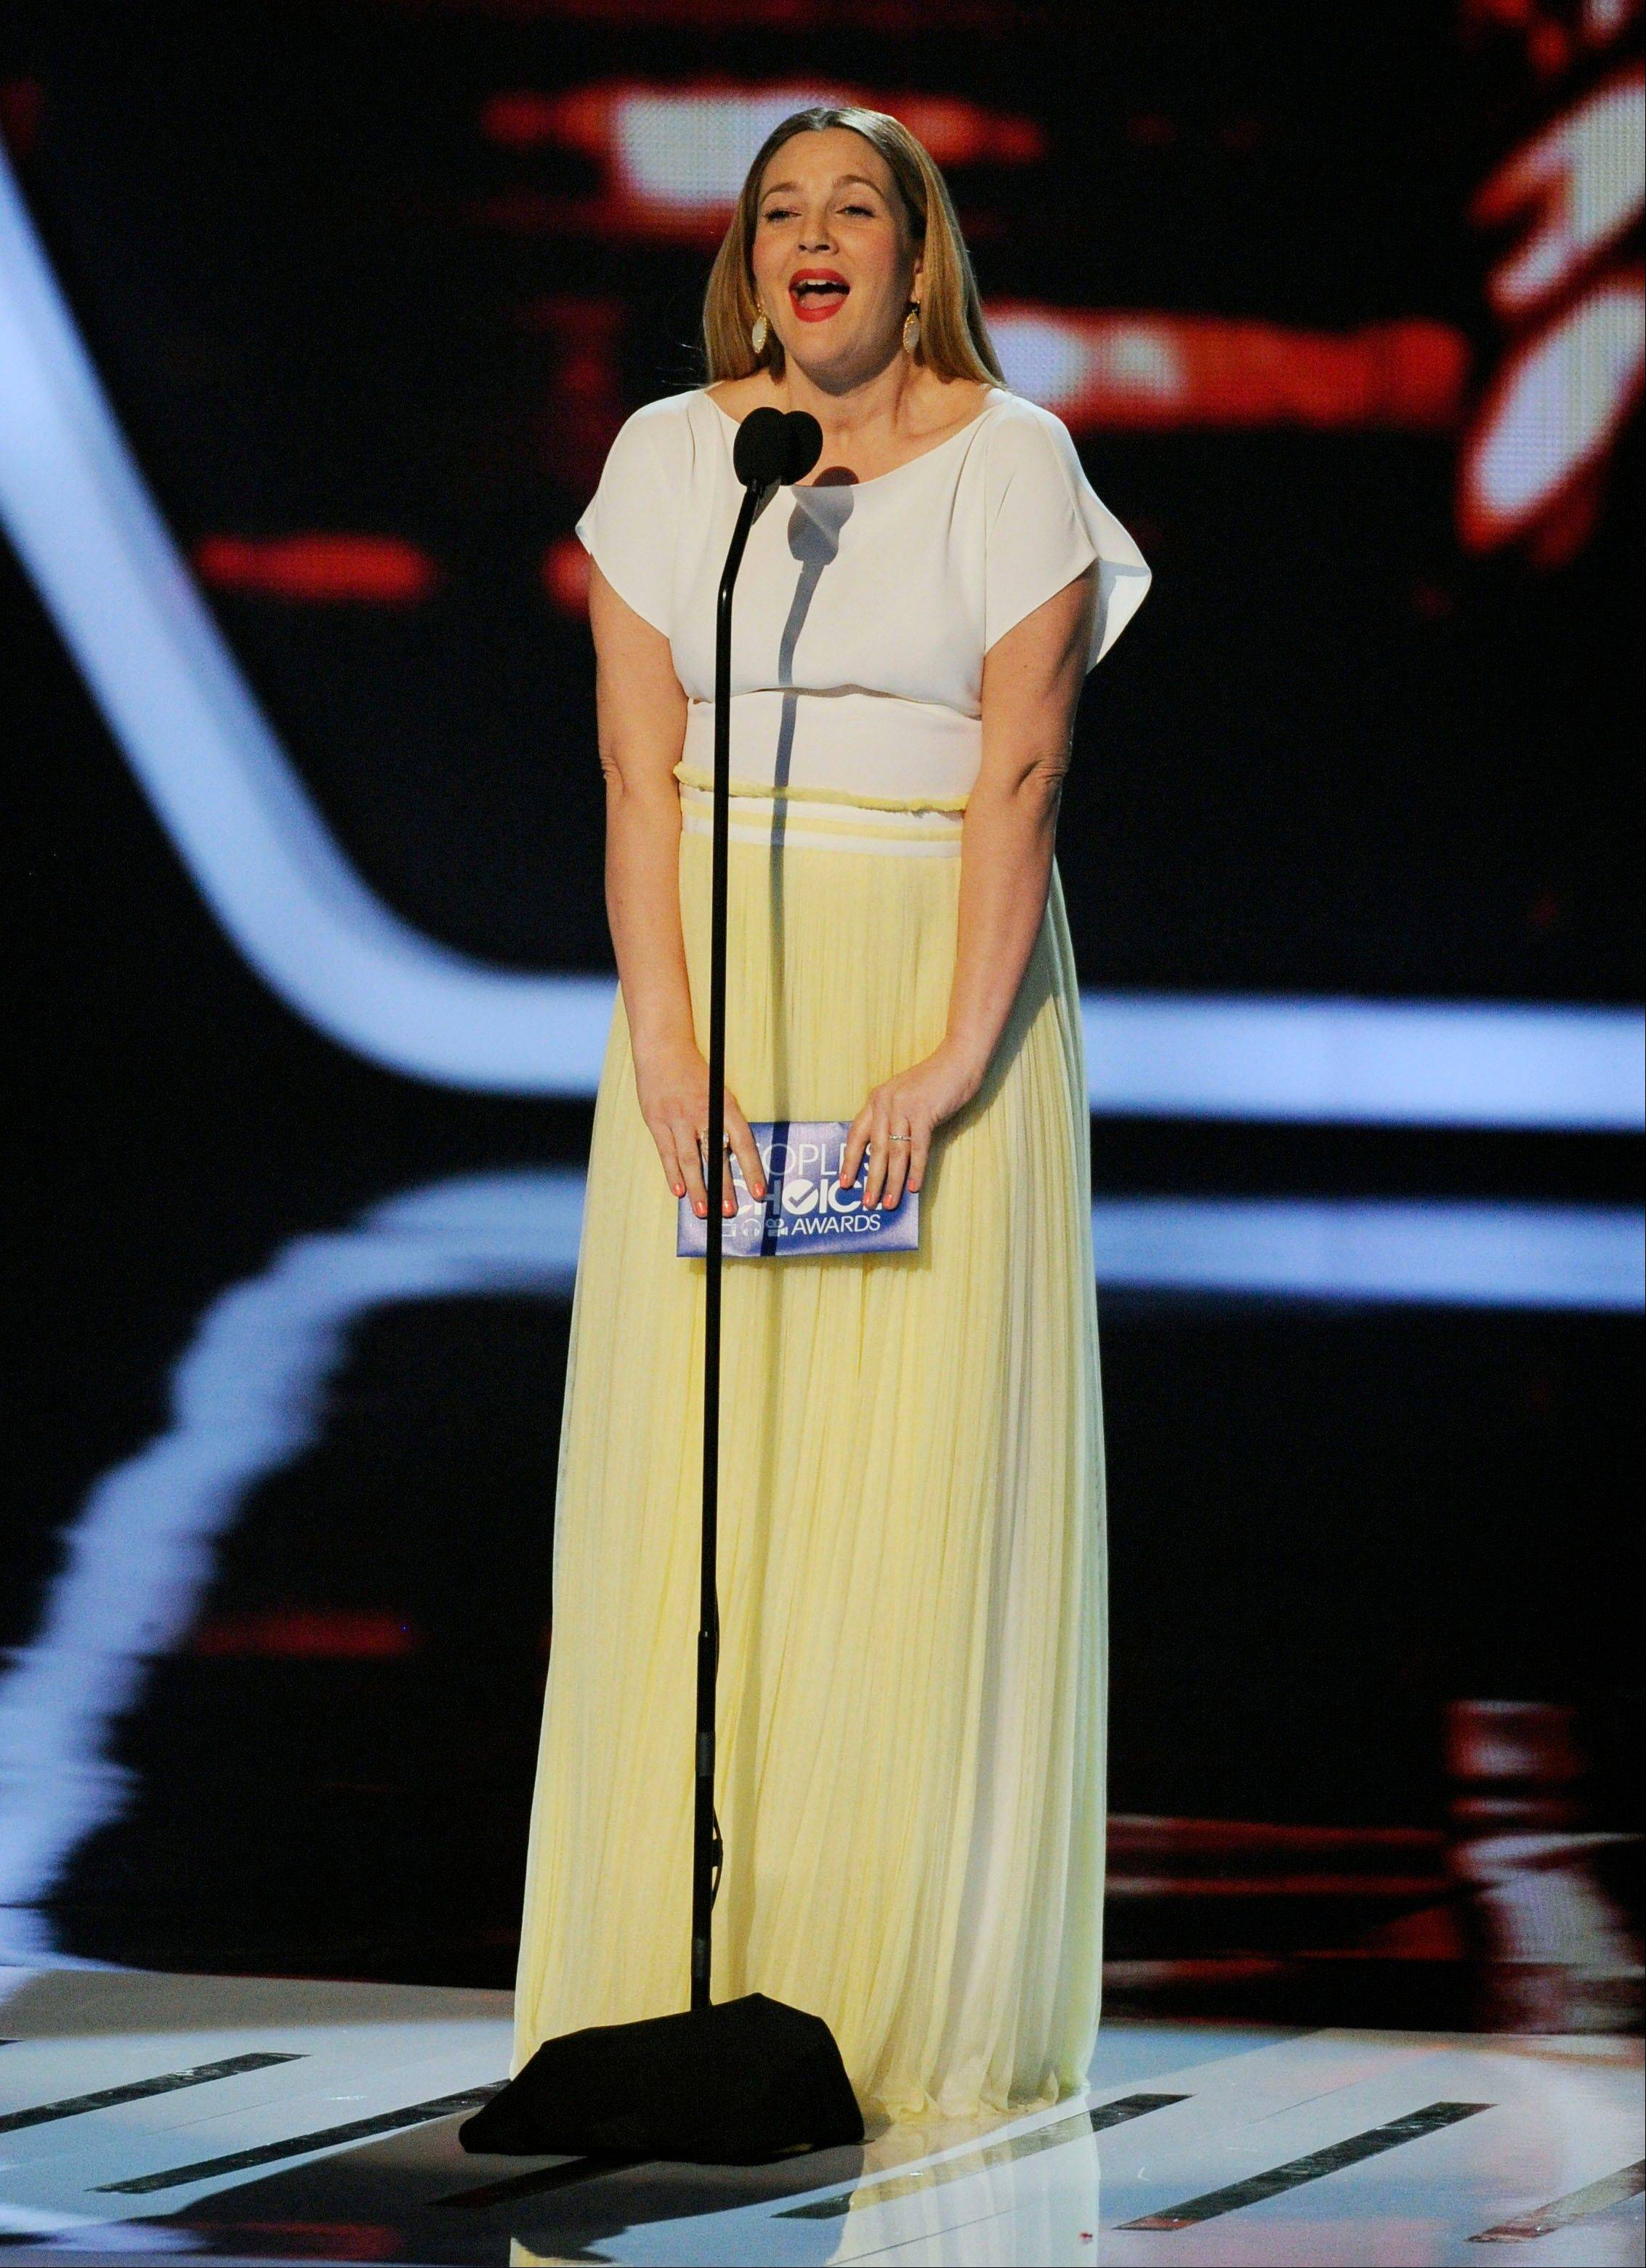 Associated PressDrew Barrymore presents the award for favorite comedic movie actor at the 40th annual People's Choice Awards Wednesday in Los Angeles.